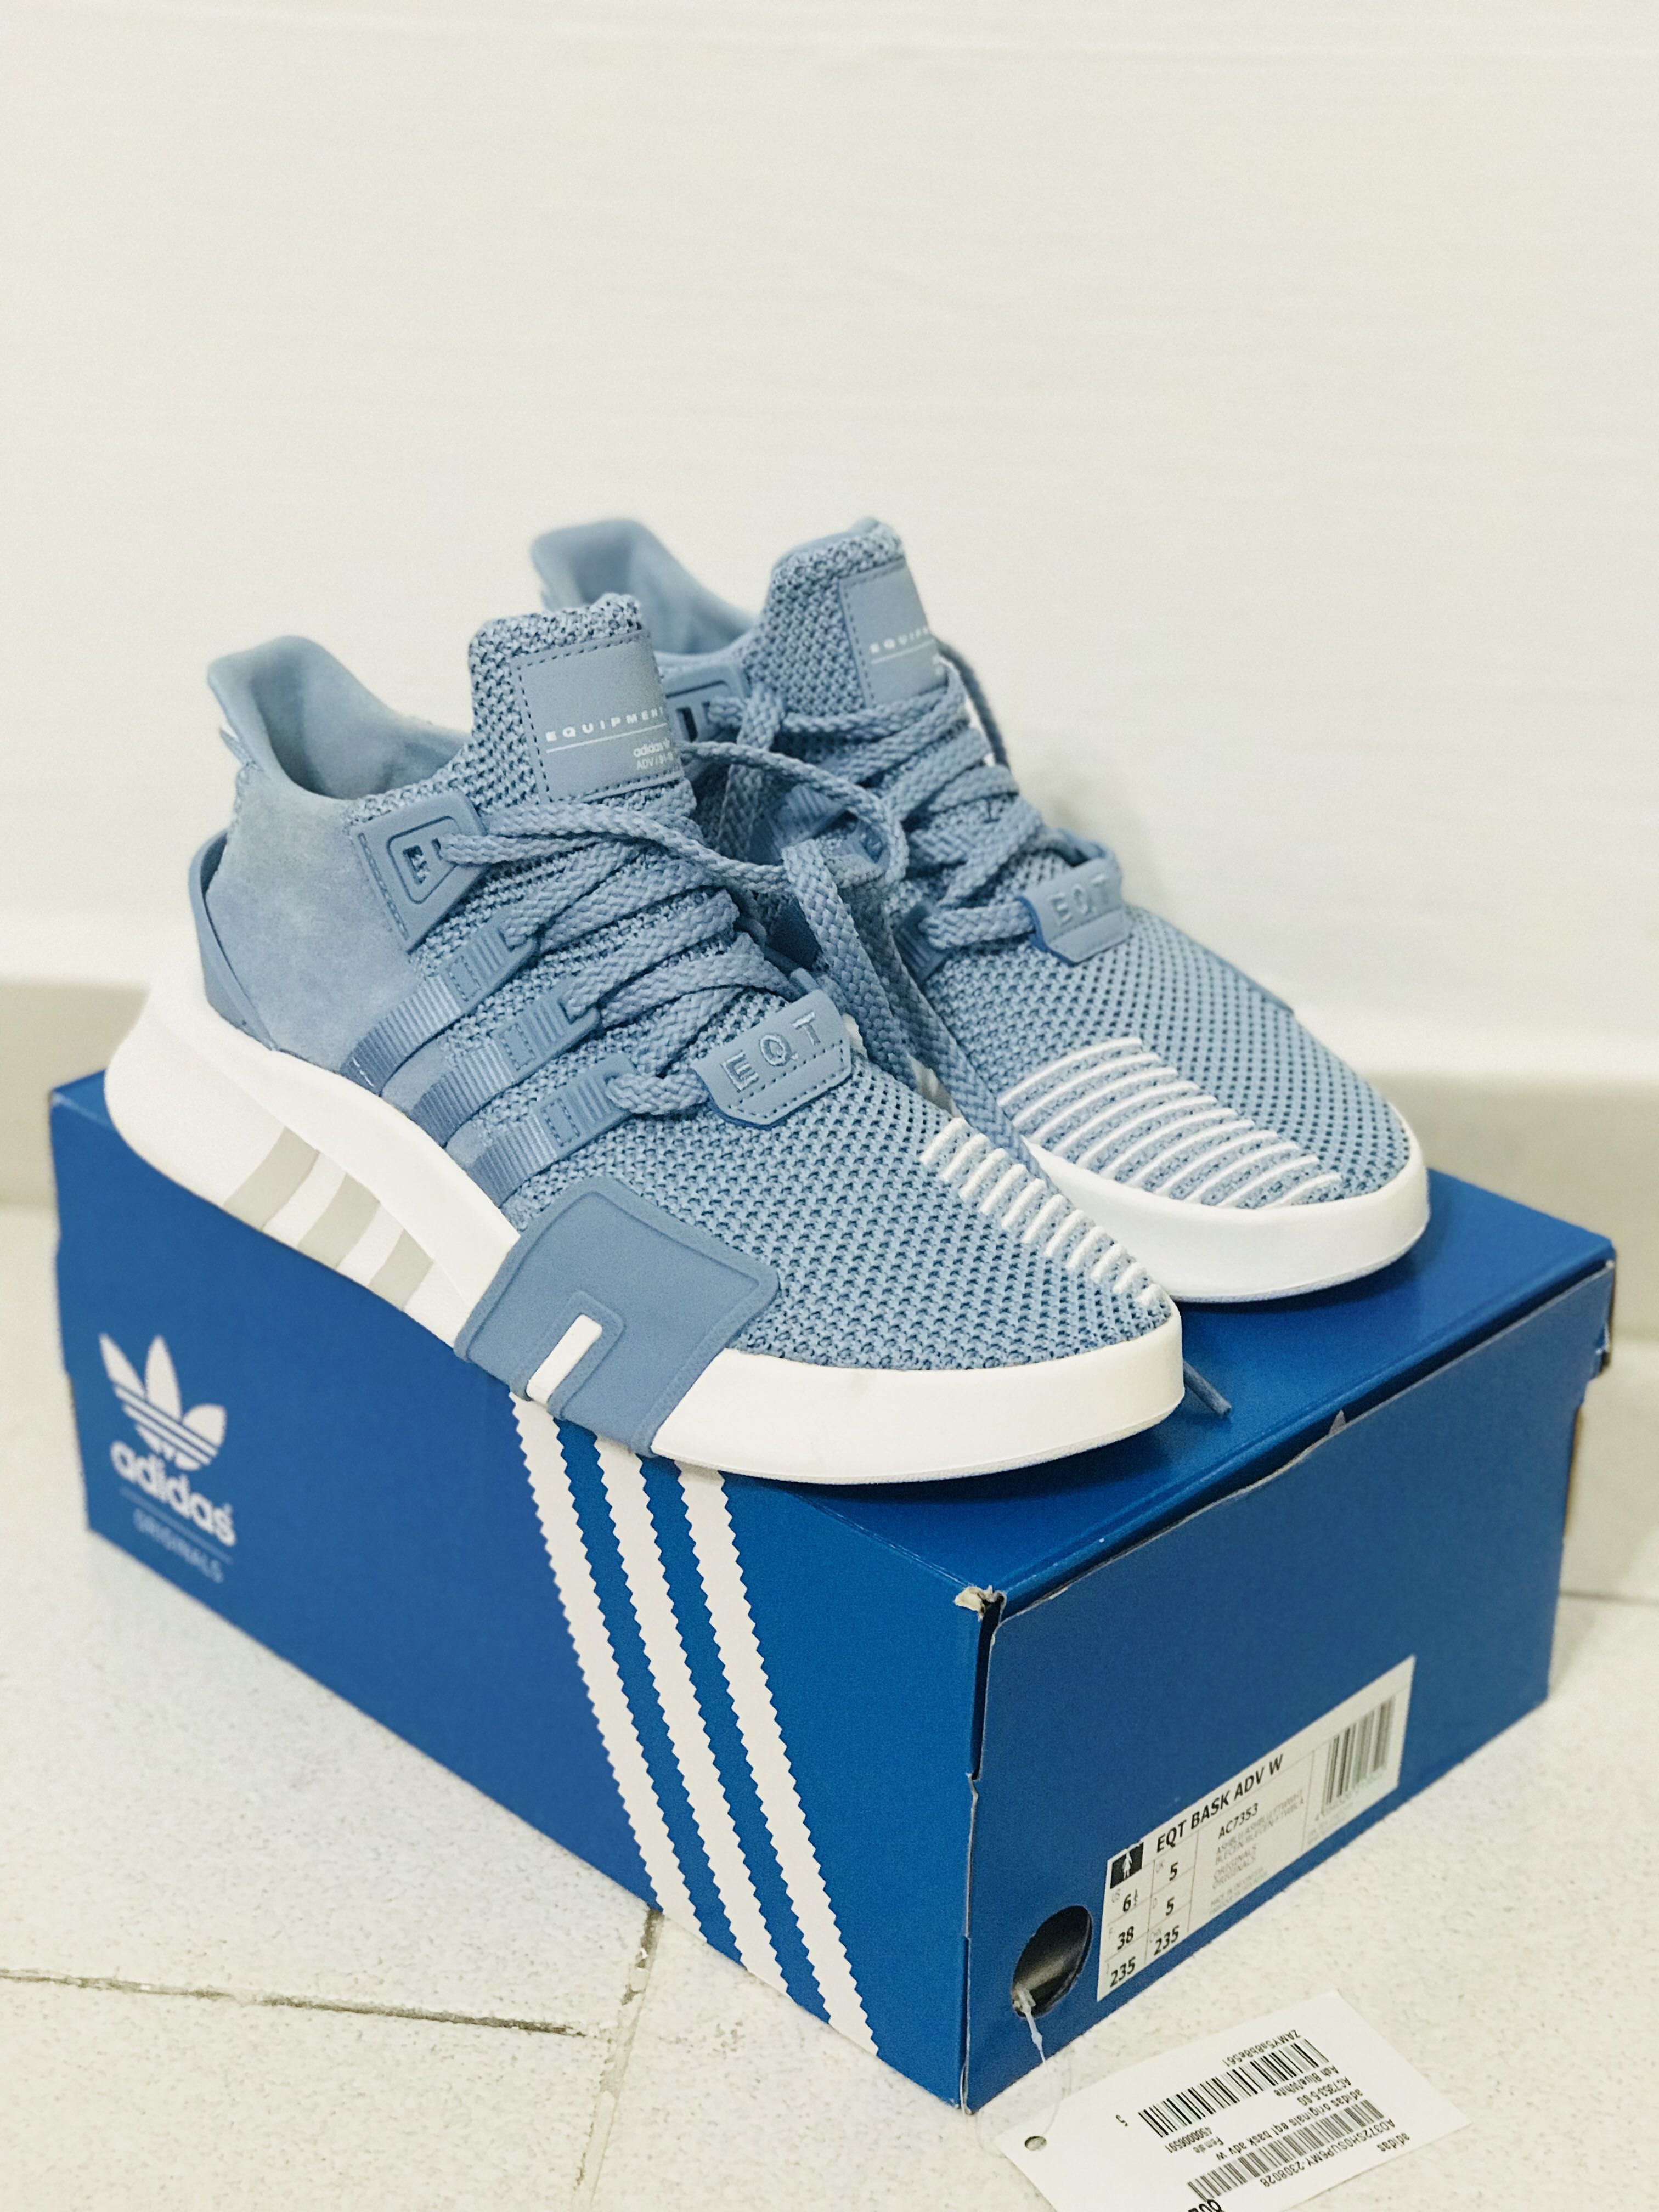 super popular d639a af177 Adidas EQT Bask ADV Blue, Women's Fashion, Shoes on Carousell